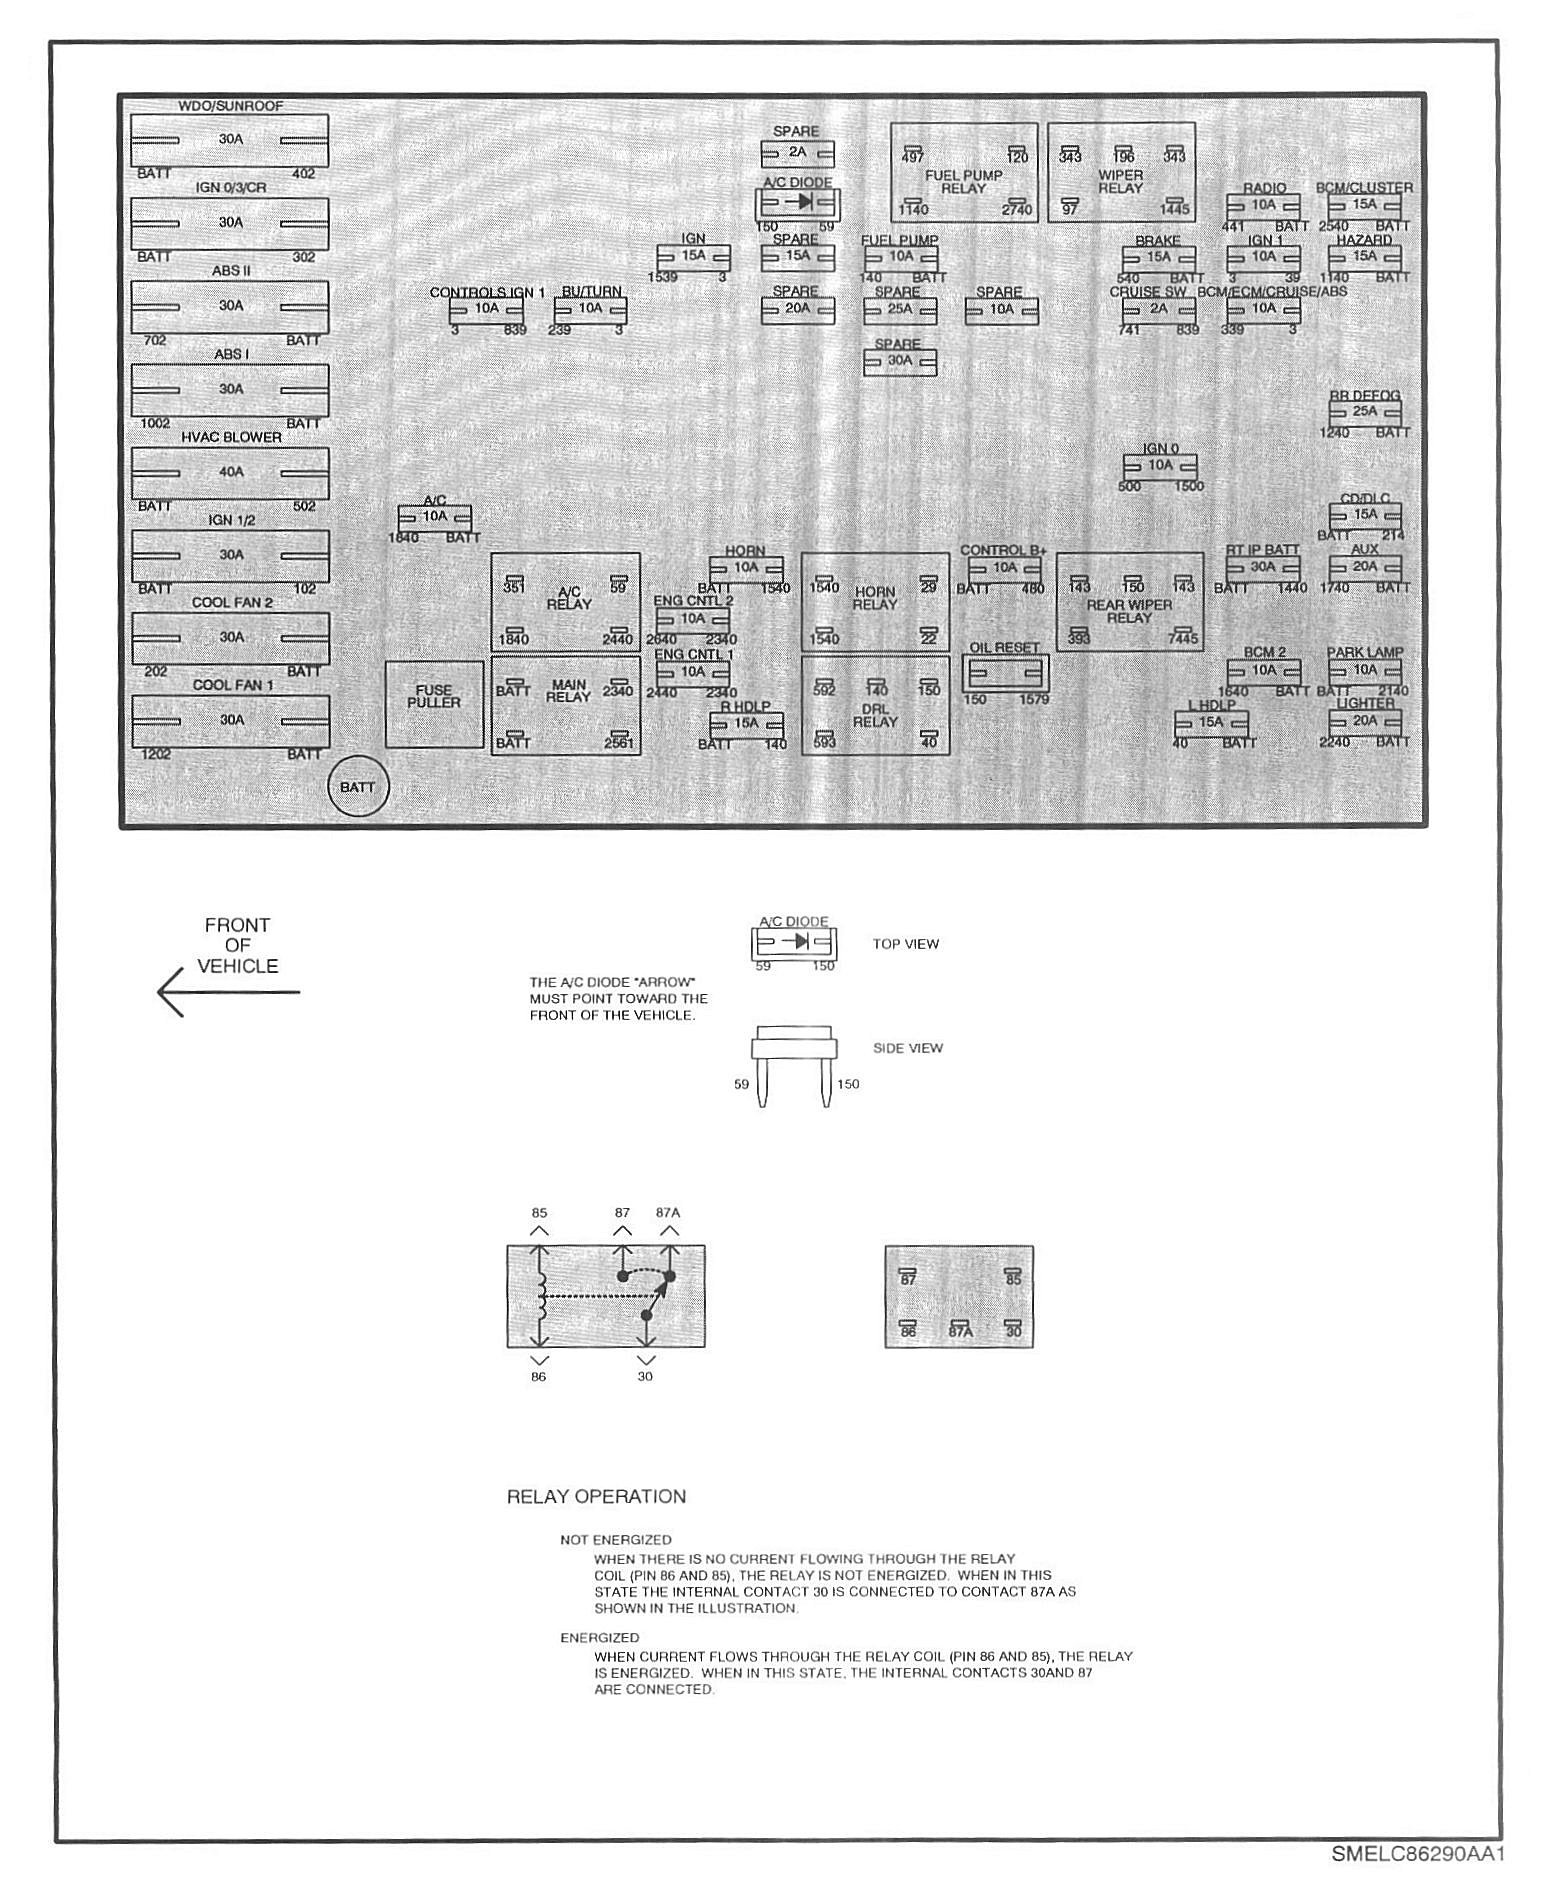 1993 toyota 4runner fuse diagram IzsFbzk 100 [ l200 wiring diagram manual ] mitsubishi l200 k74 wiring 2007 saturn aura radio wiring diagram at edmiracle.co